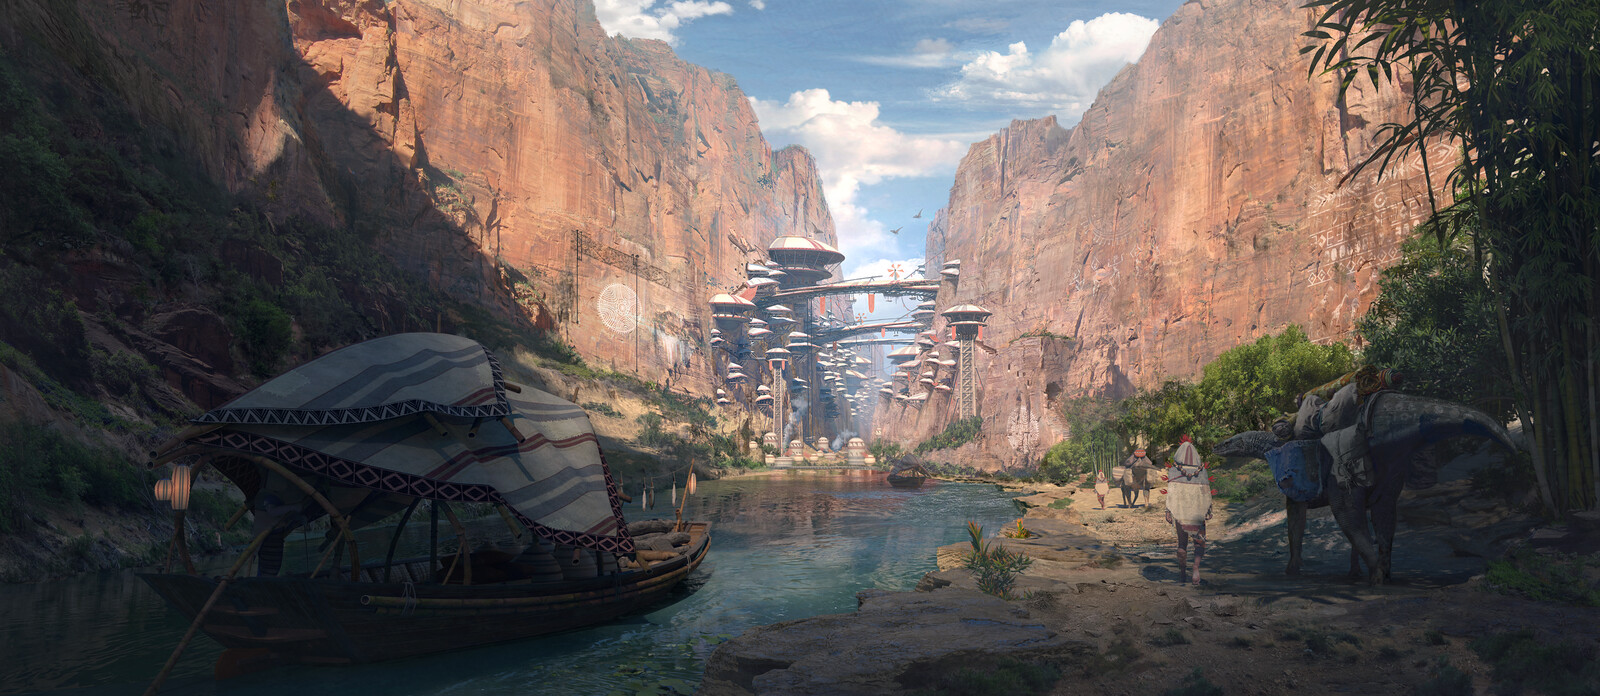 Canyon Civilization Vertical City